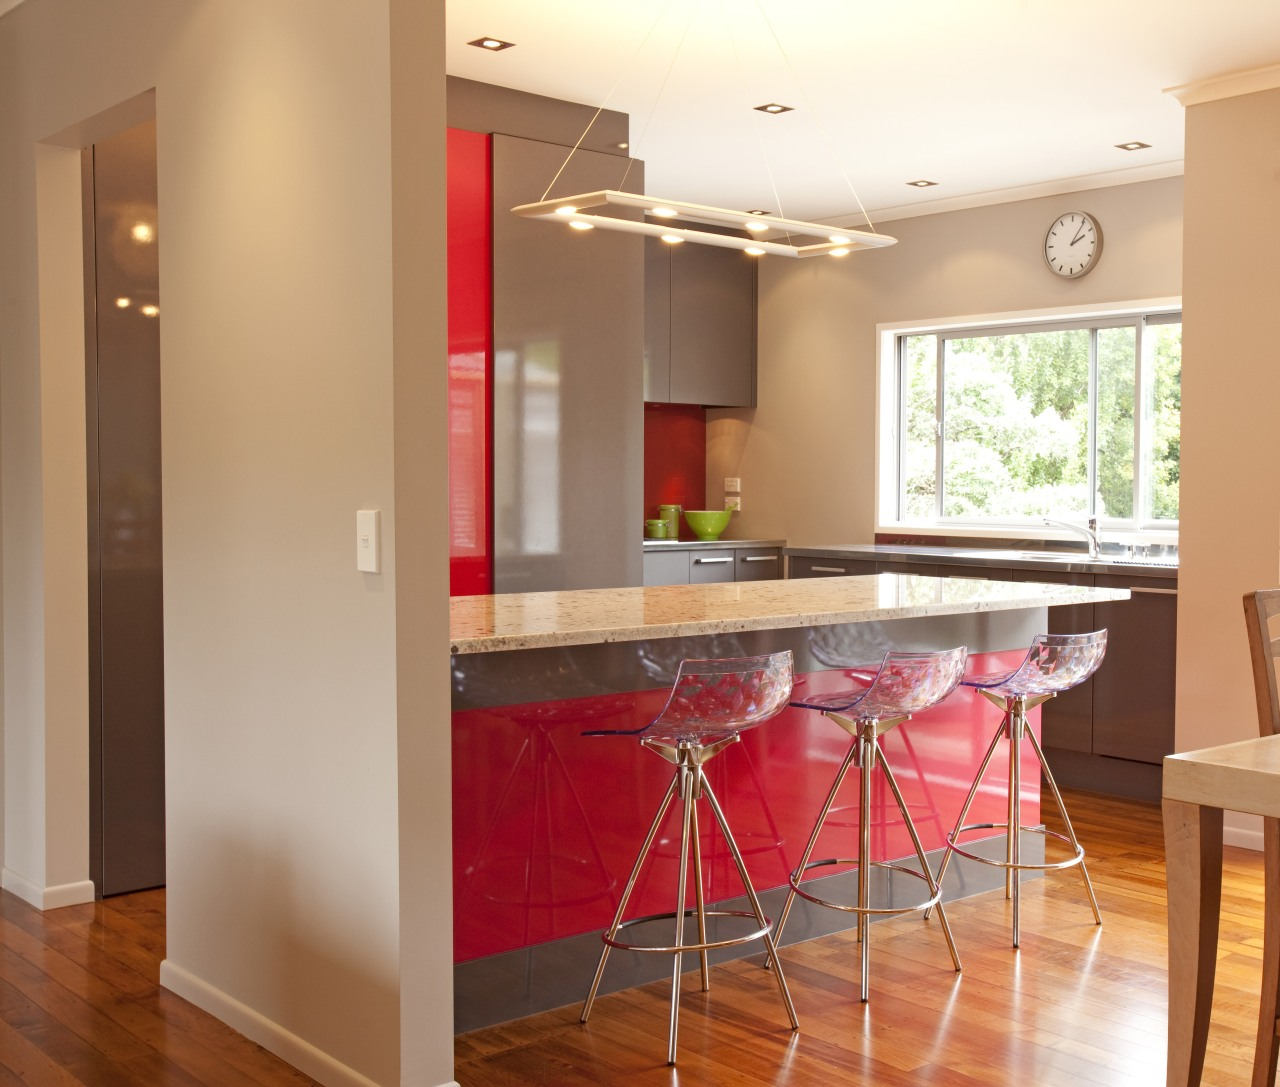 Streamlined grey kitchen with red accents. Wooden floors, cabinetry, ceiling, countertop, dining room, floor, flooring, hardwood, home, interior design, kitchen, property, real estate, room, table, wood flooring, orange, brown